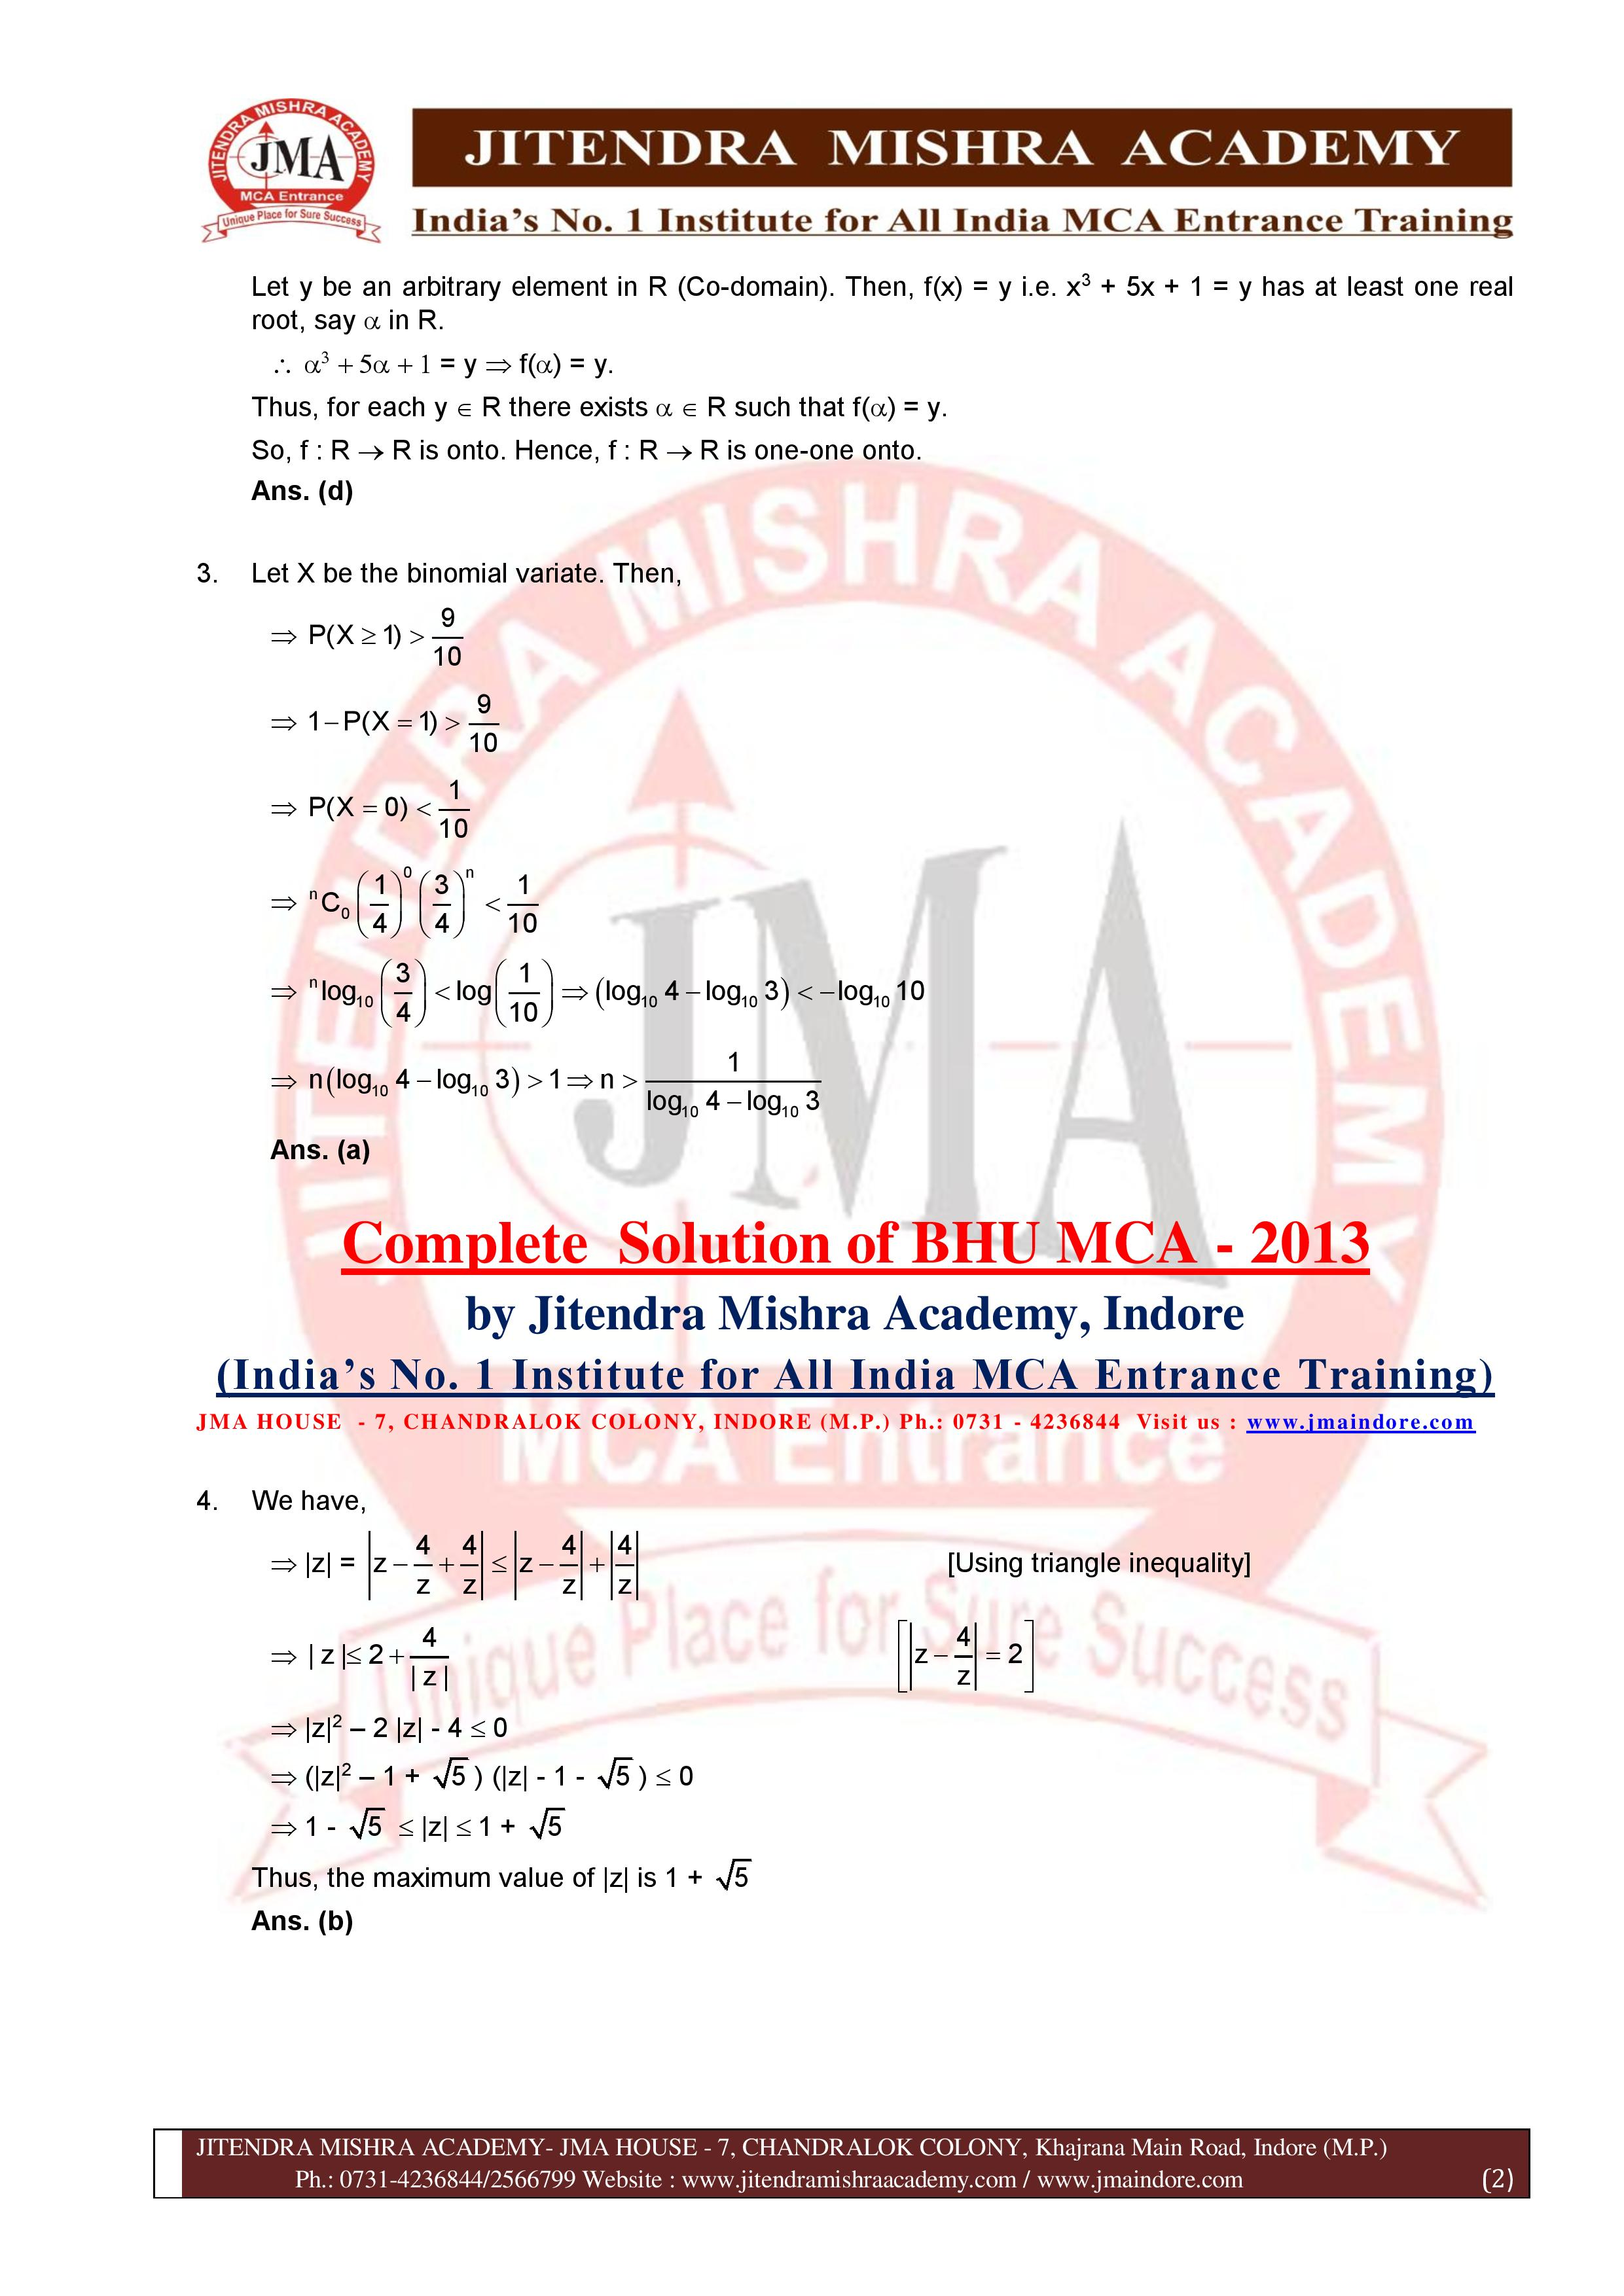 BHU 2013 SOLUTION (SET - 3) (06.07.16)-page-002